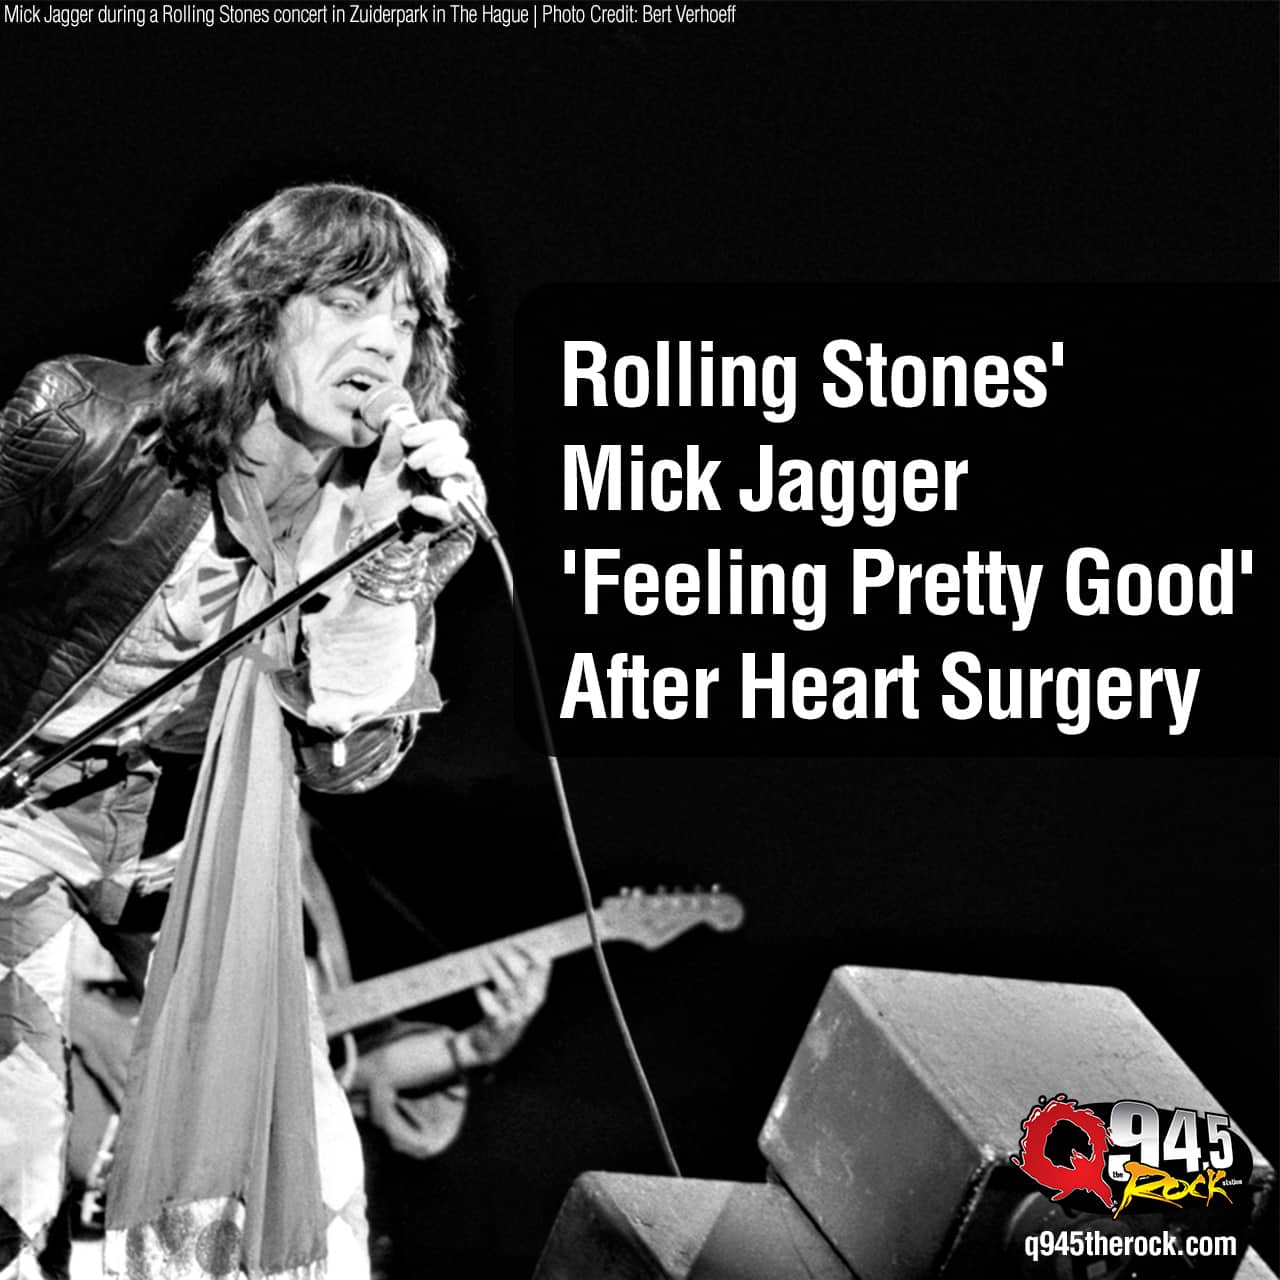 Rolling Stones' Mick Jagger 'Feeling Pretty Good' After Heart Surgery